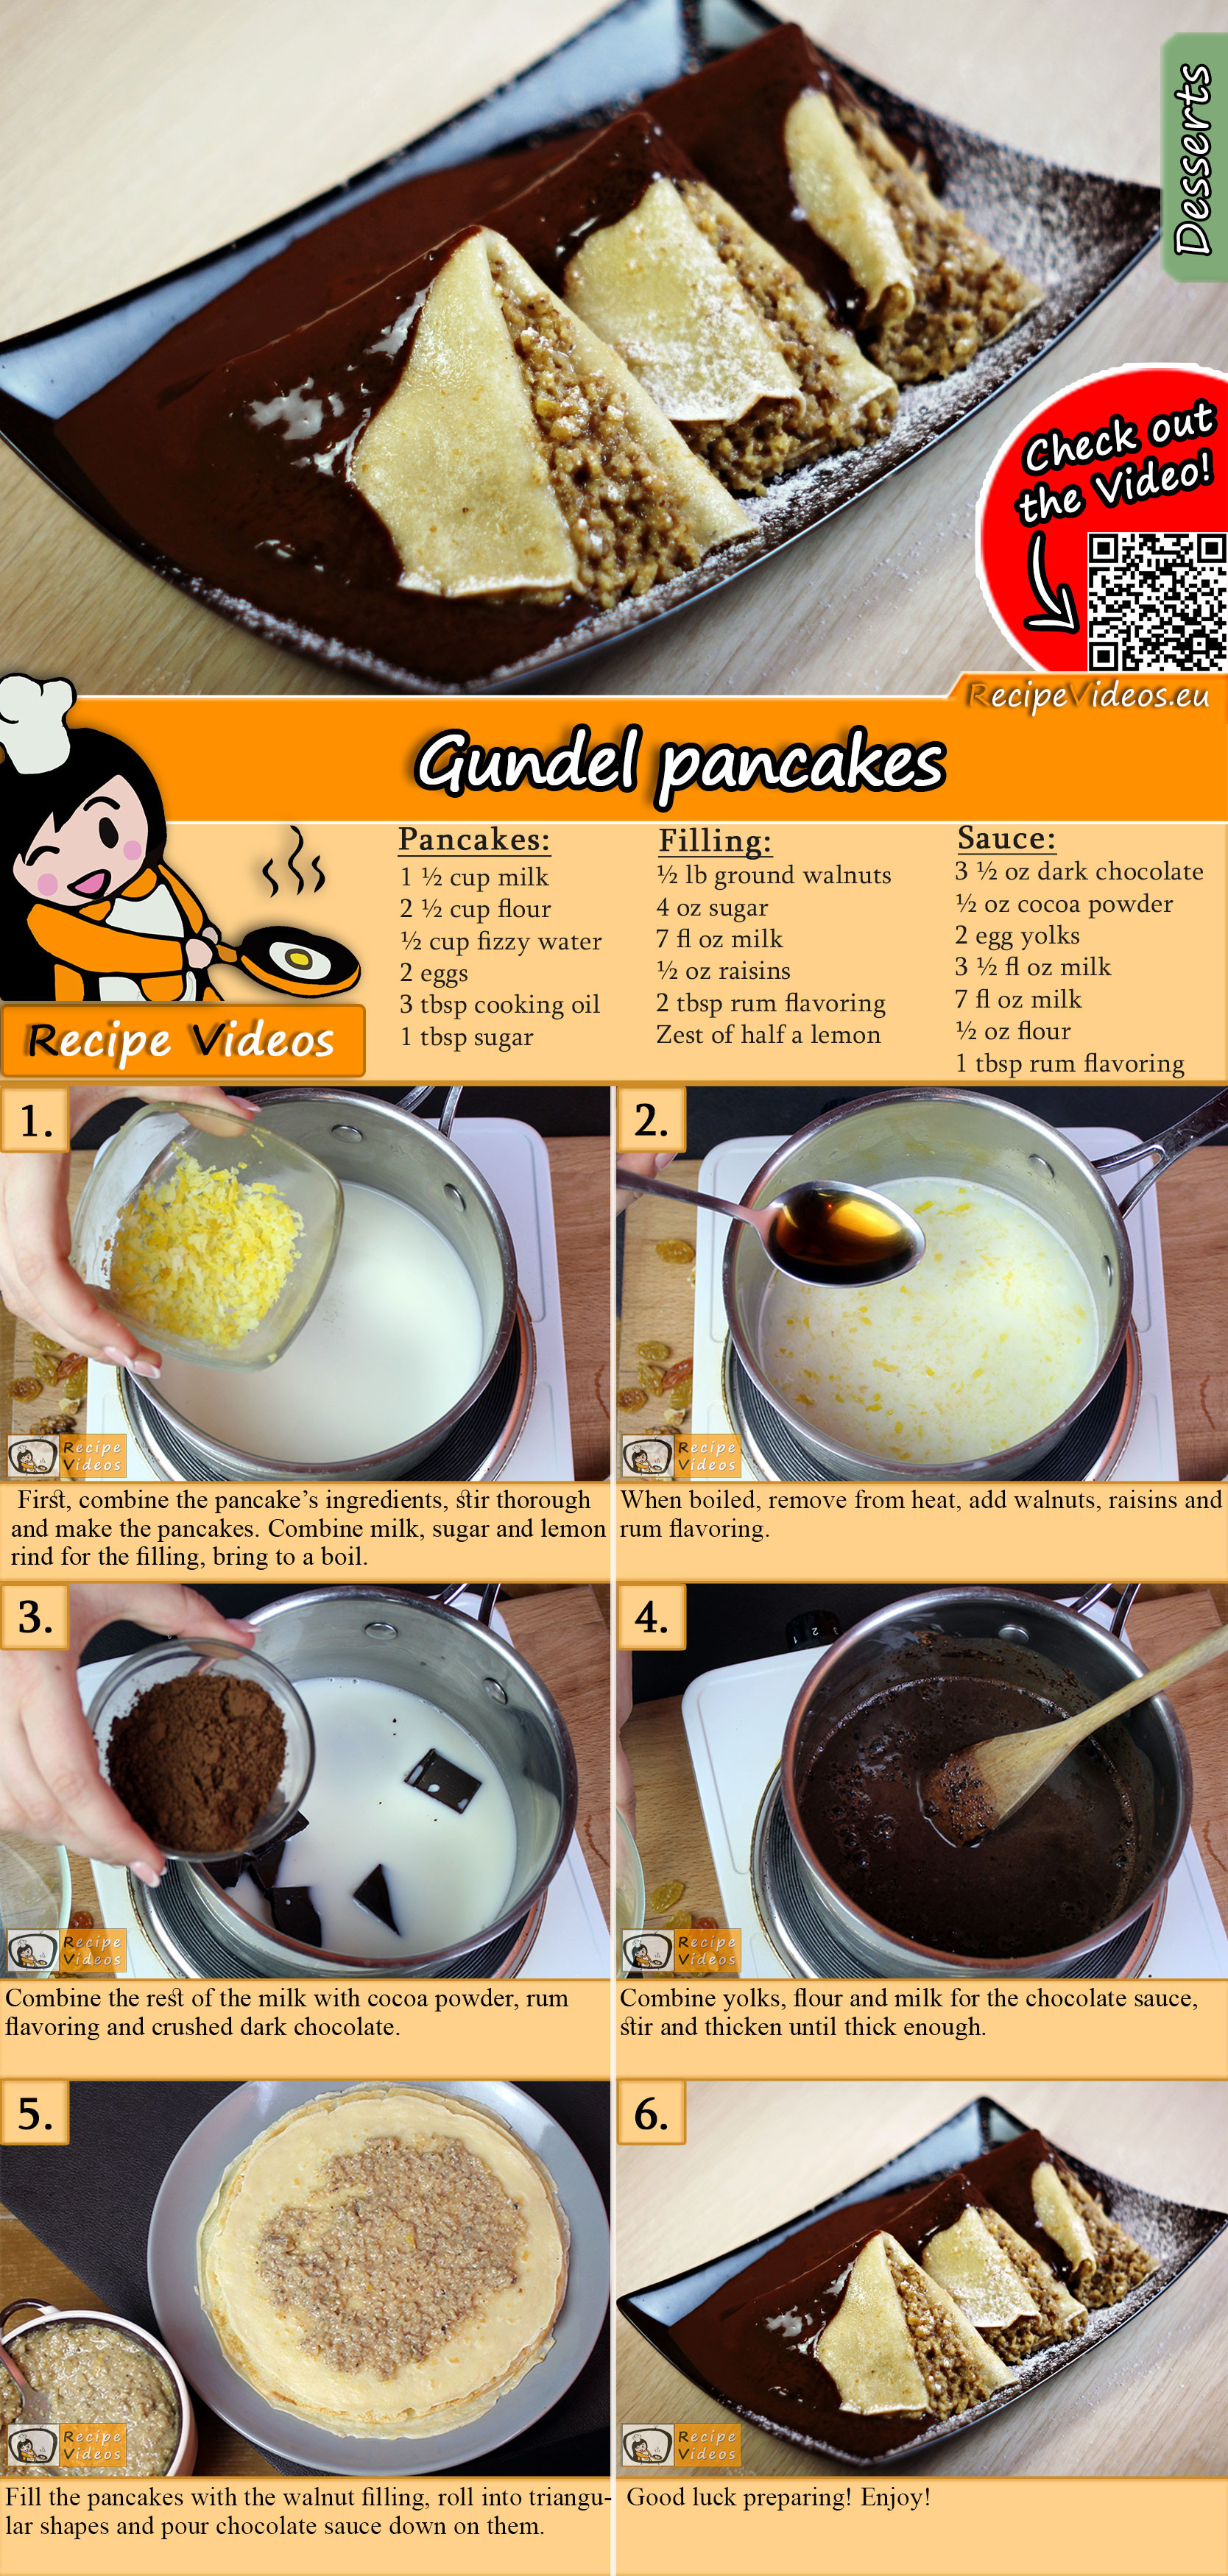 Homemade Gundel pancakes recipe with video